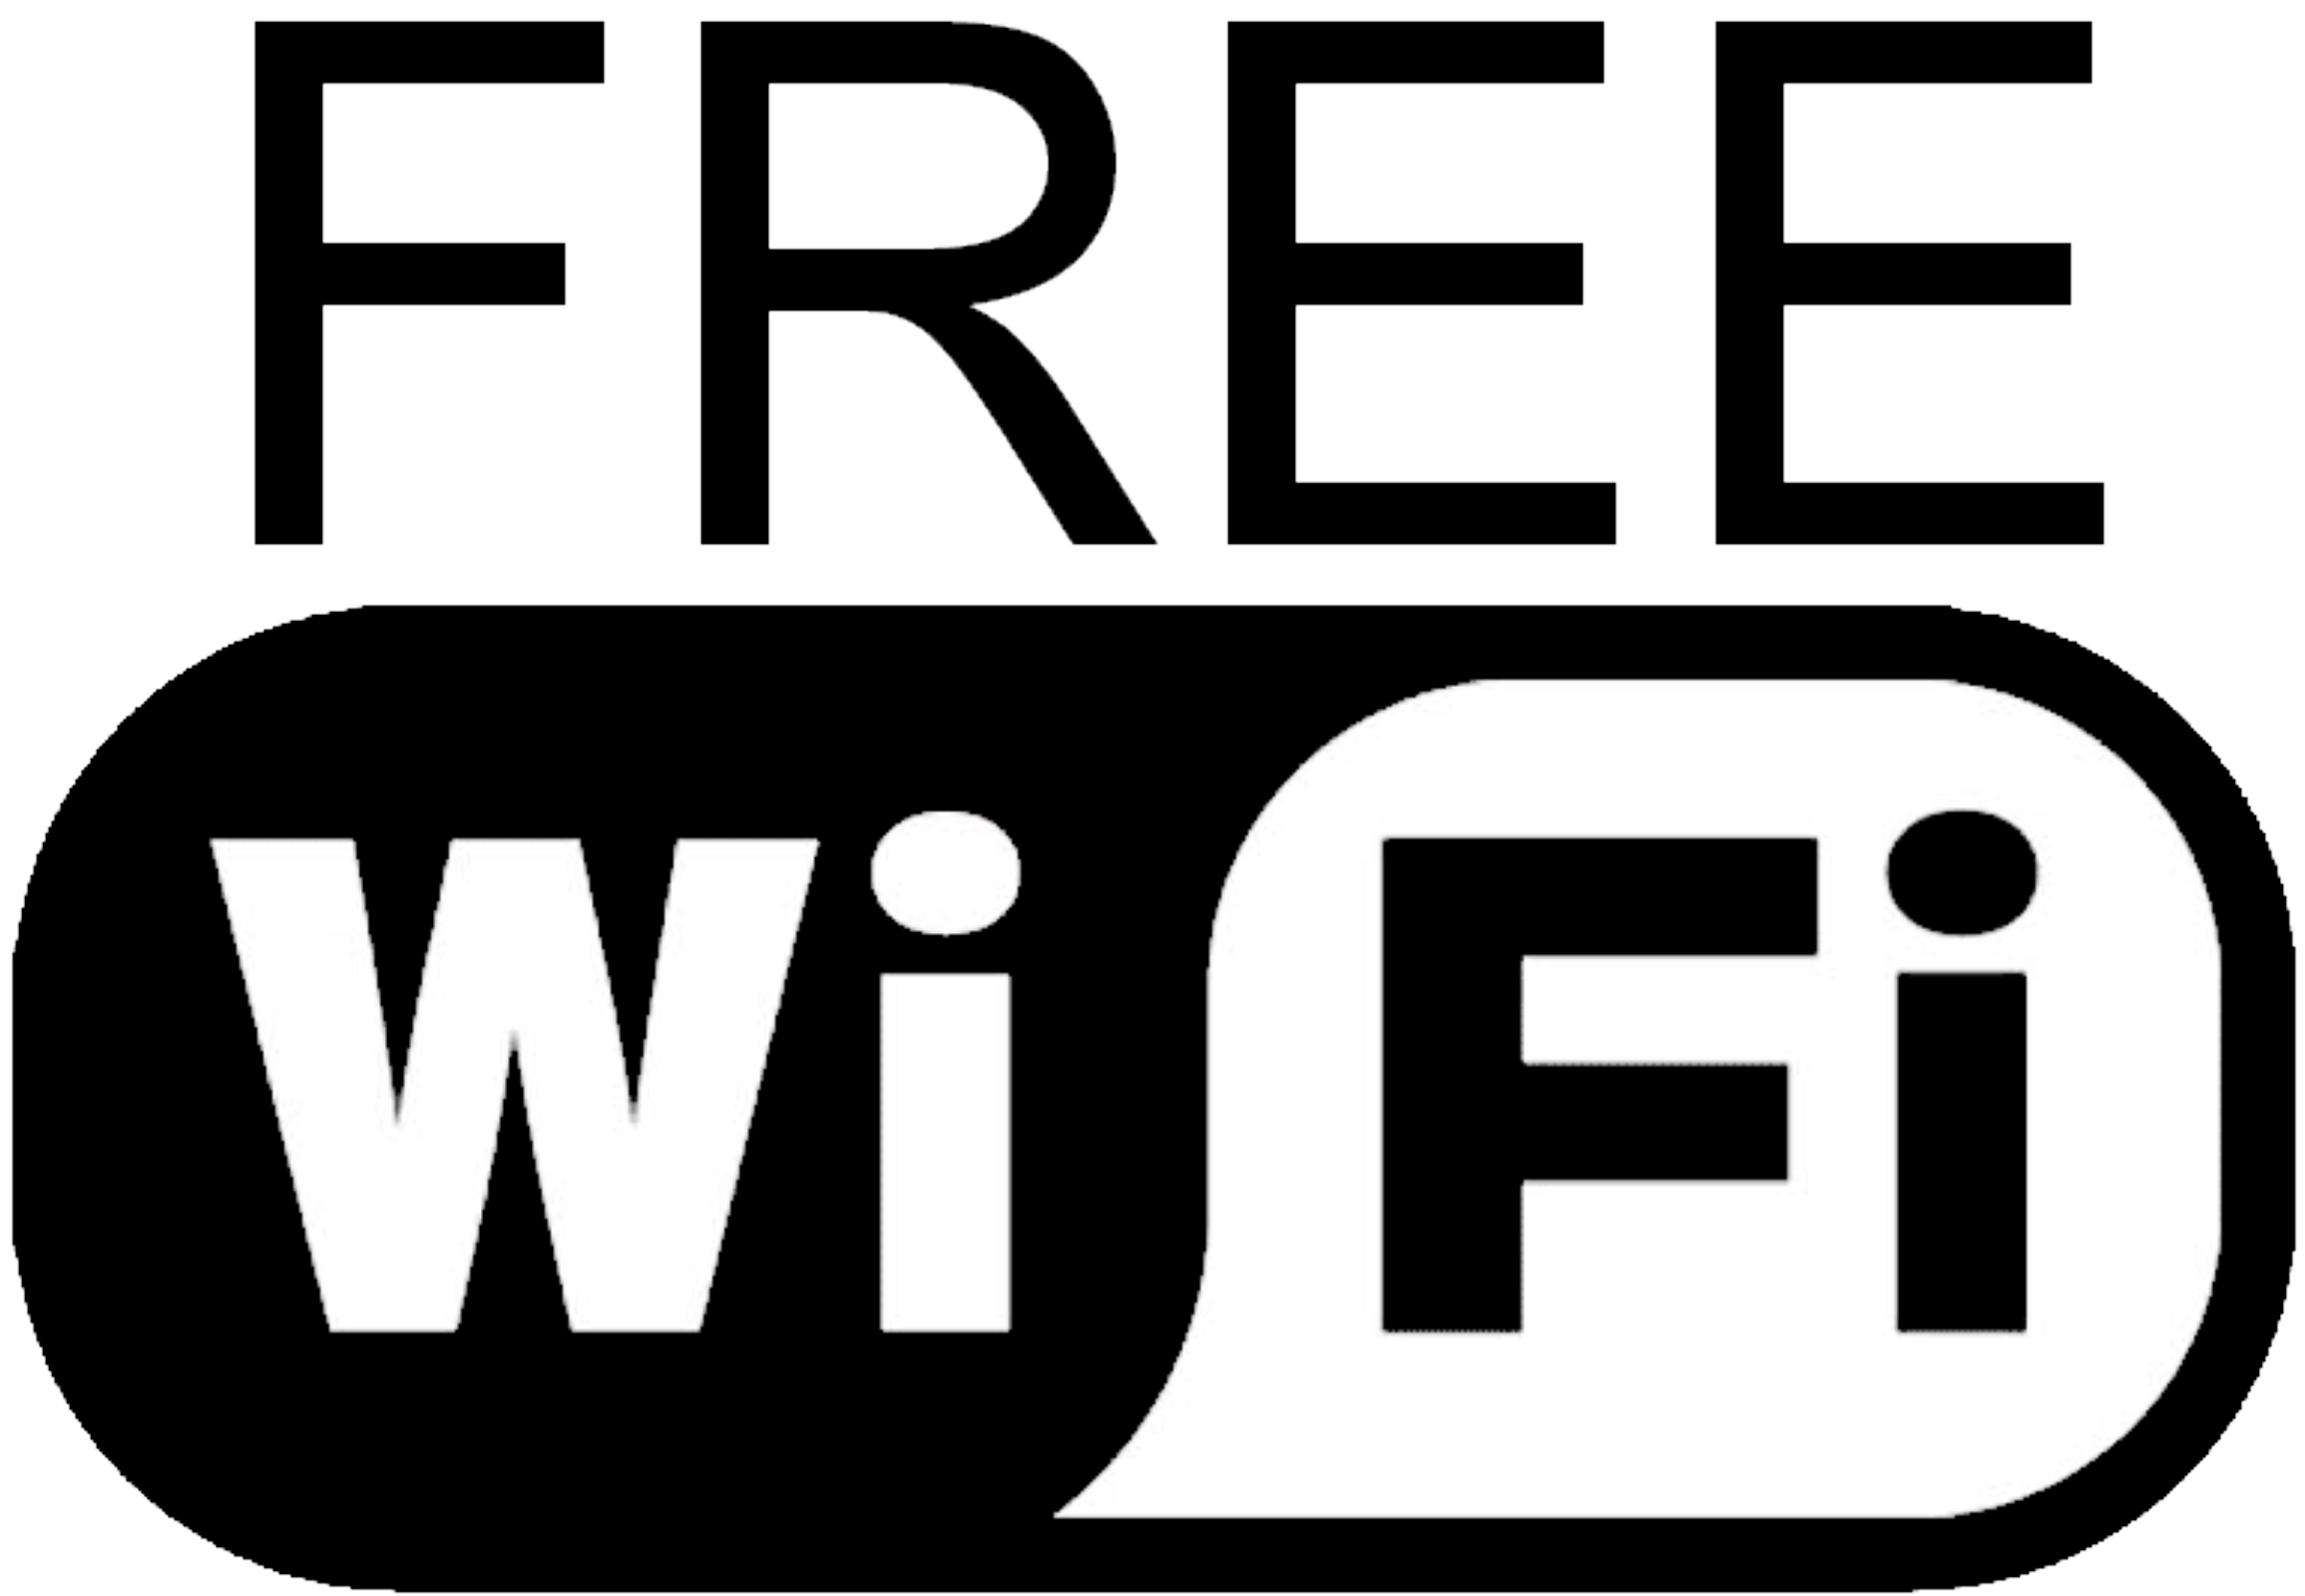 Wifi Icon Black PNG Image Caras, The globe, Cartel